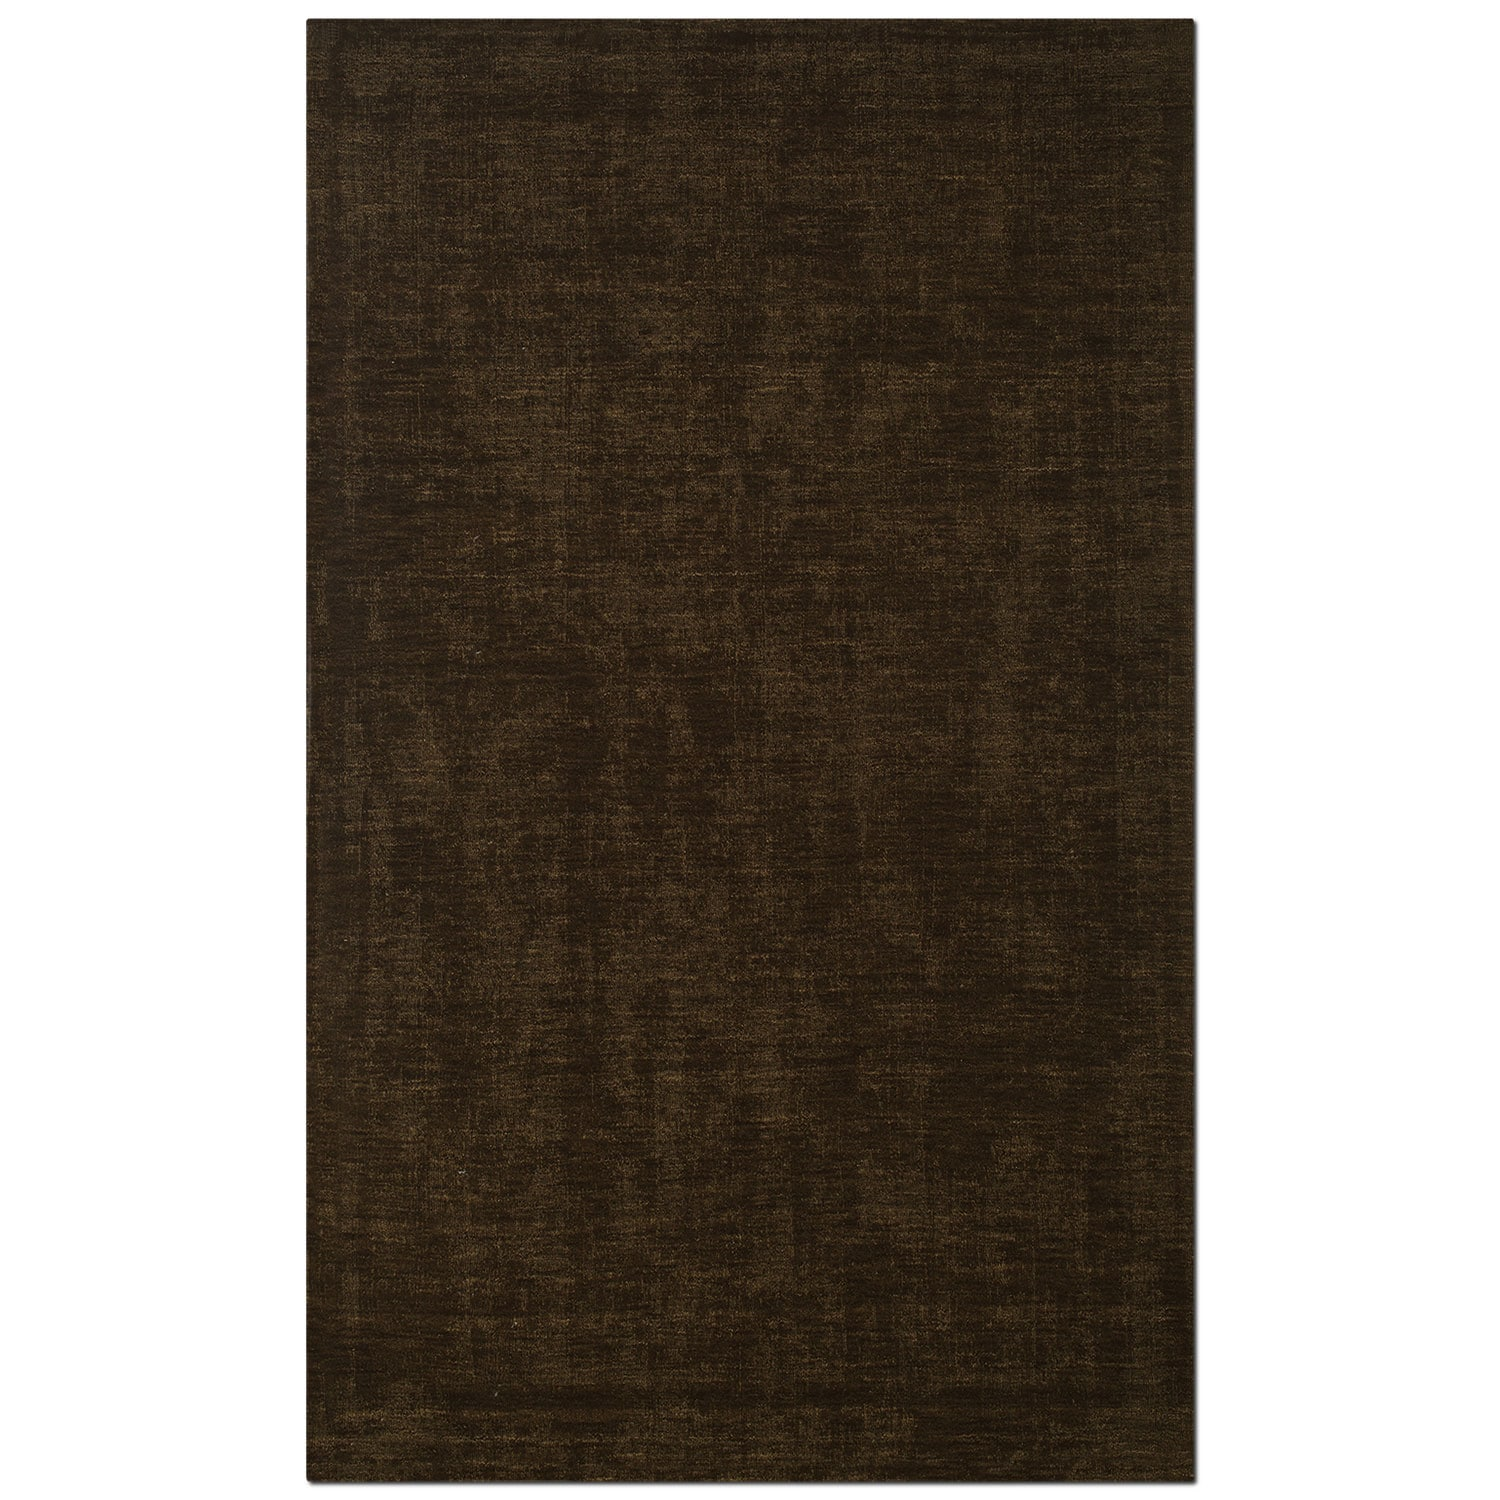 Rugs - Basics Area Rug - Medium Brown